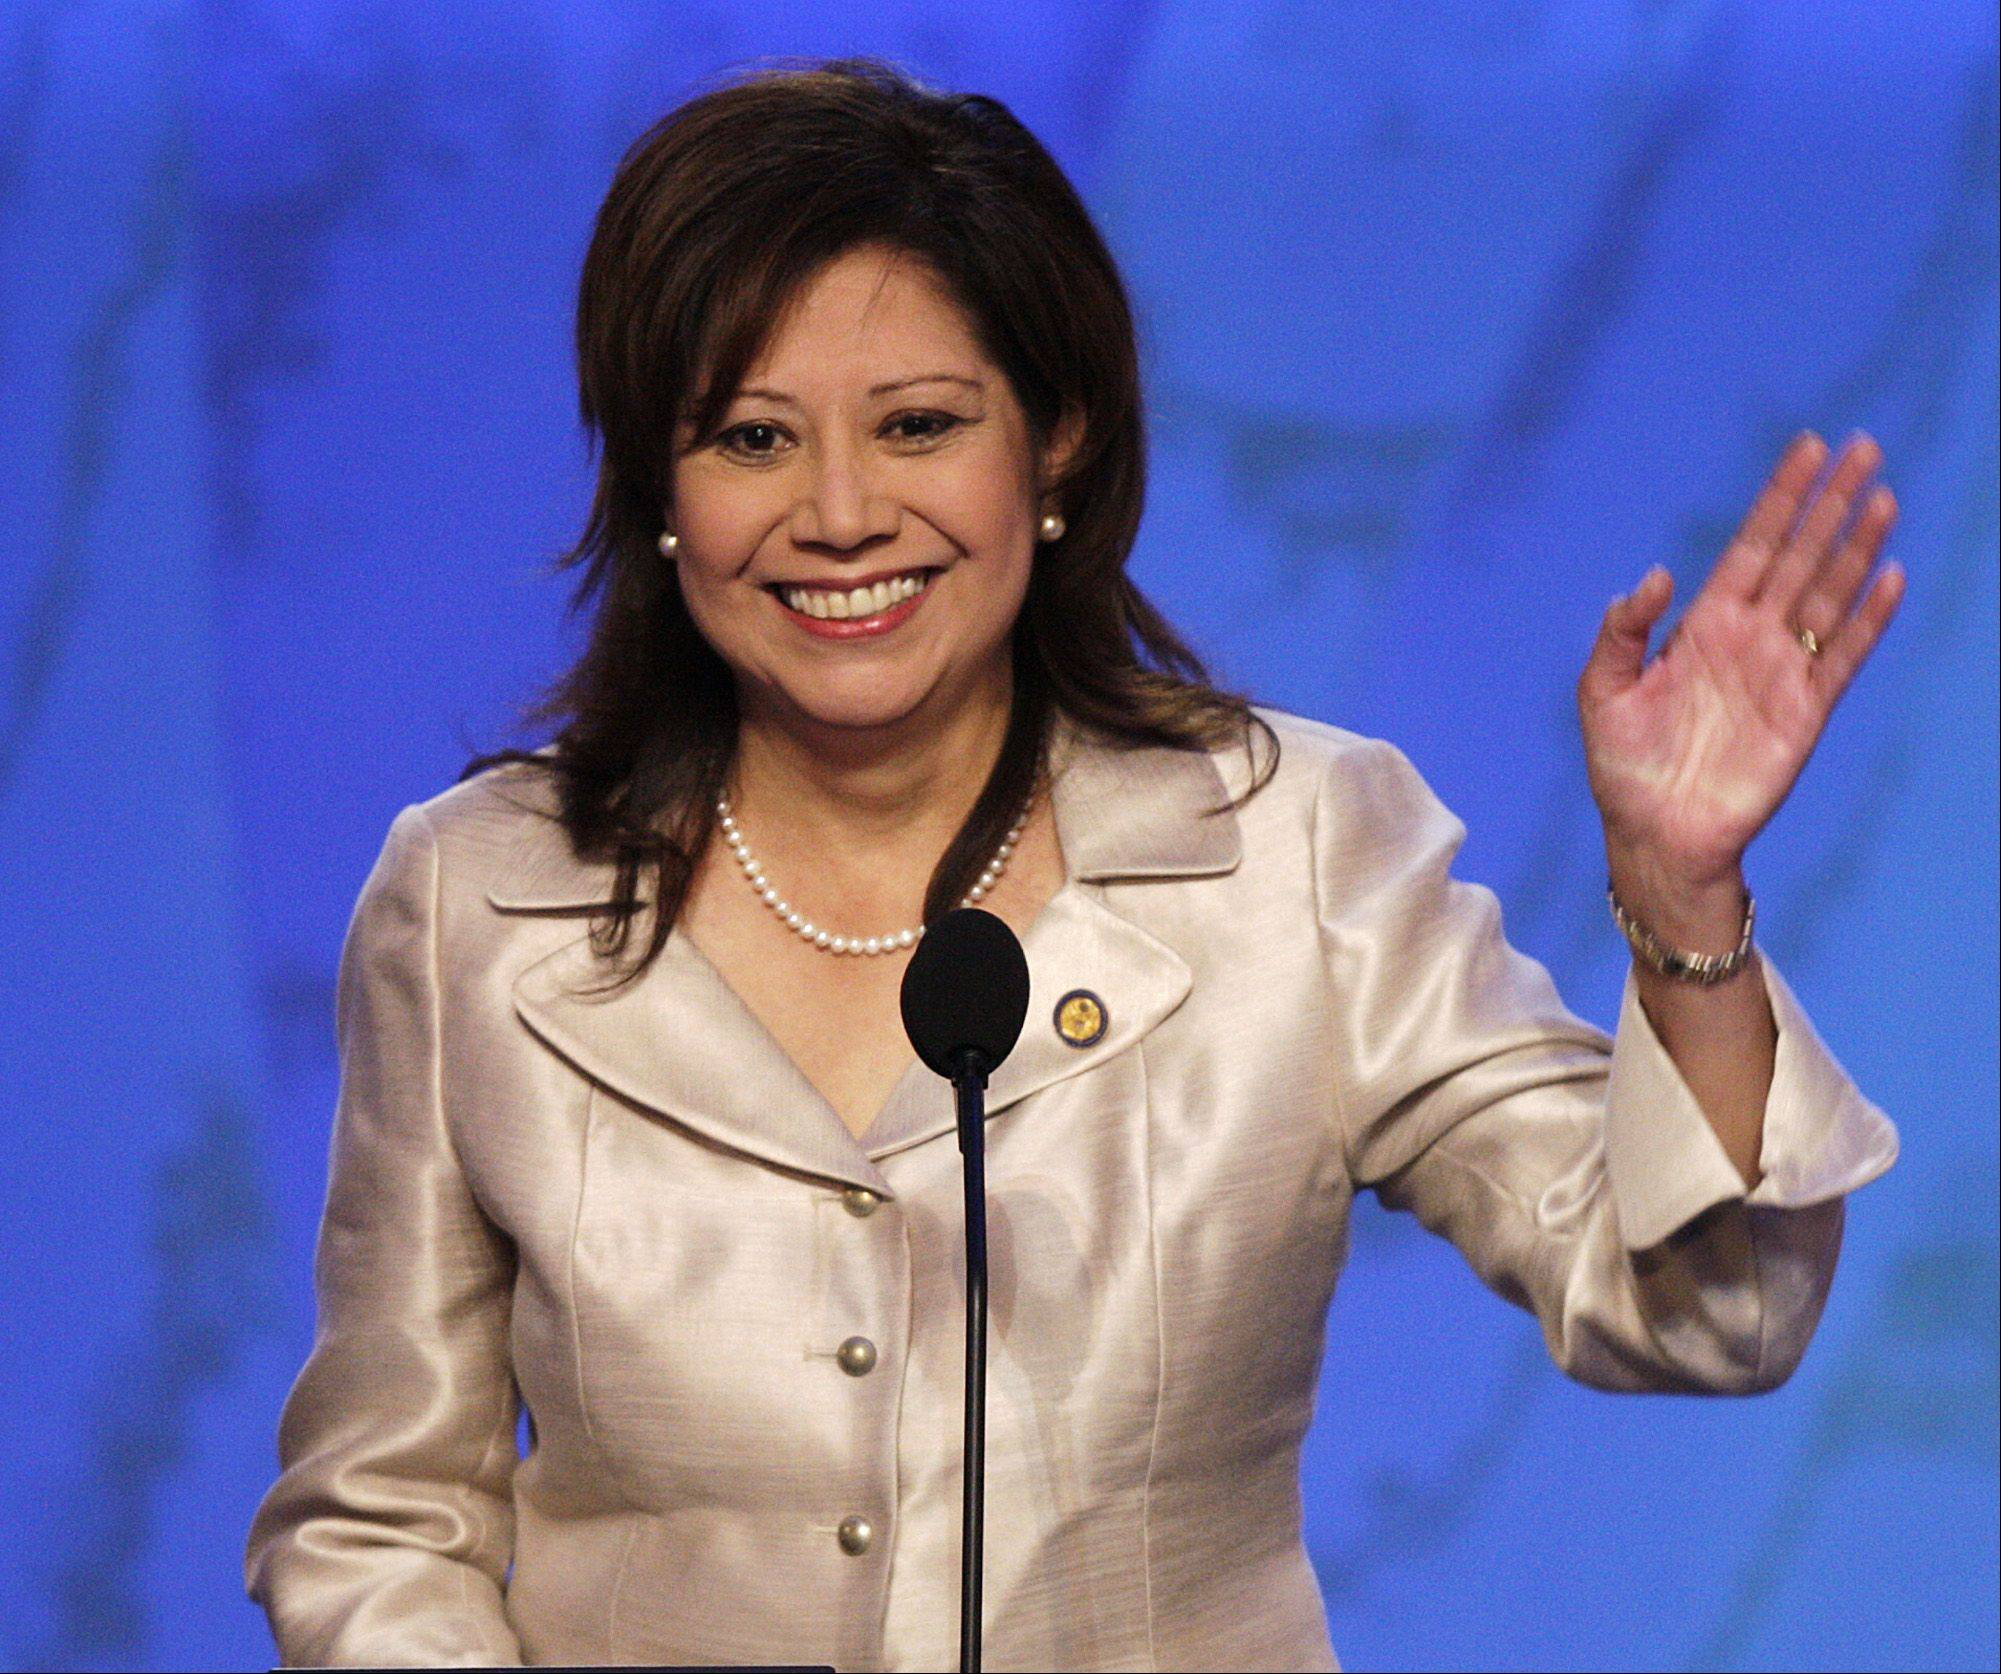 Labor Secretary Hilda Solis, daughter of a Mexican union shop steward and a Nicaraguan assembly line worker, has submitted her resignation letter to President Barack Obama.